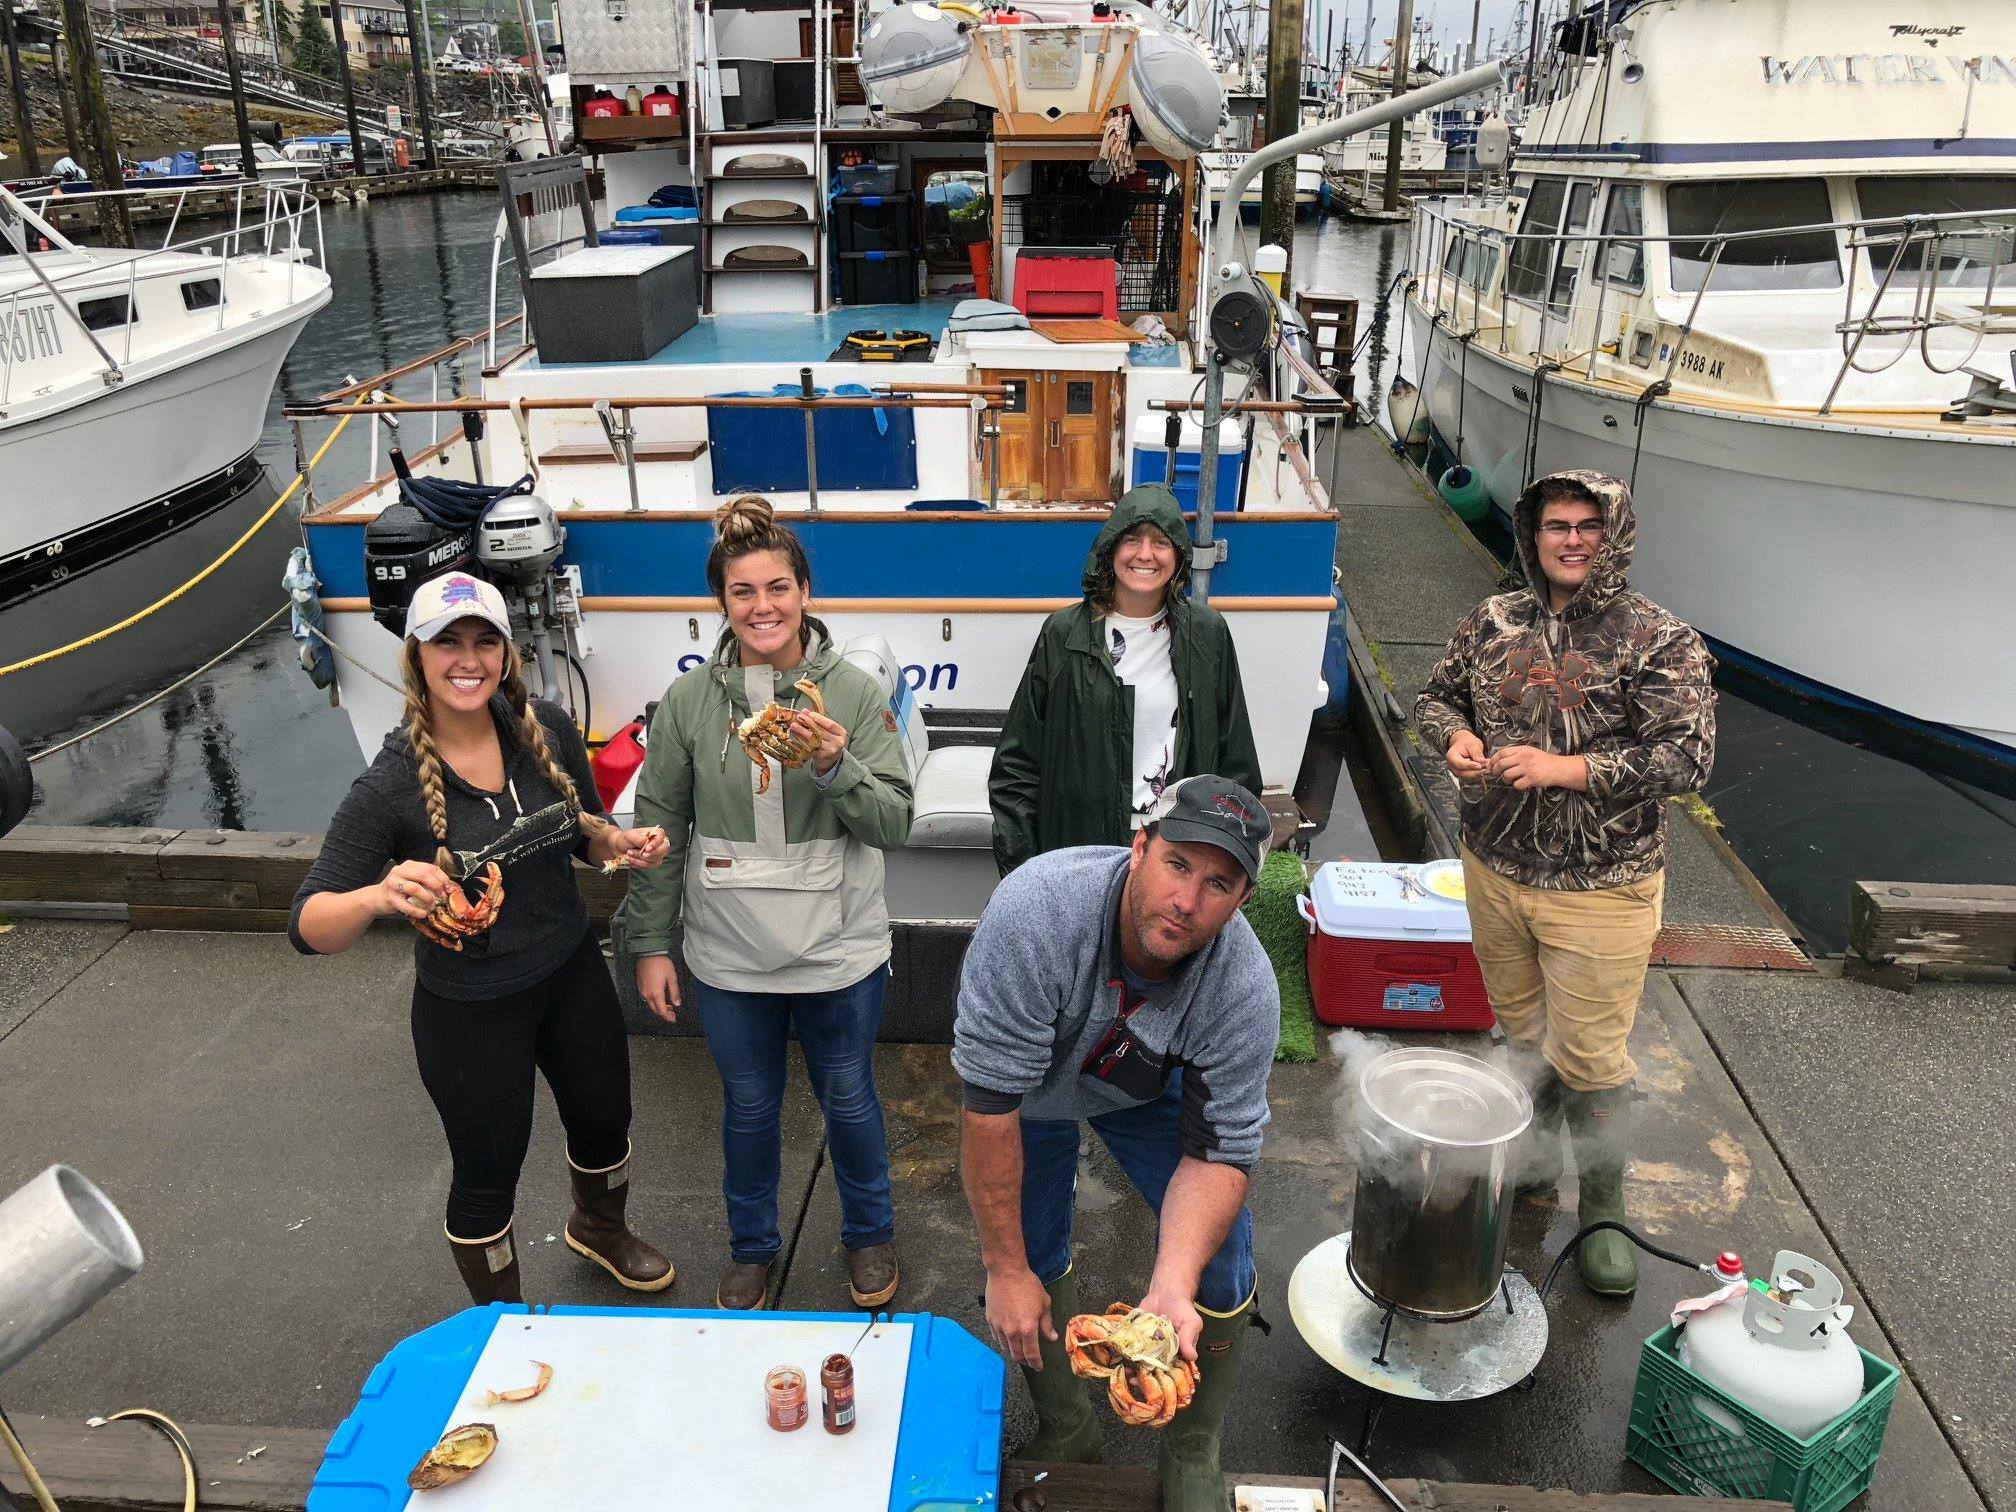 Family Fishing Trip in Ketchikan, AK